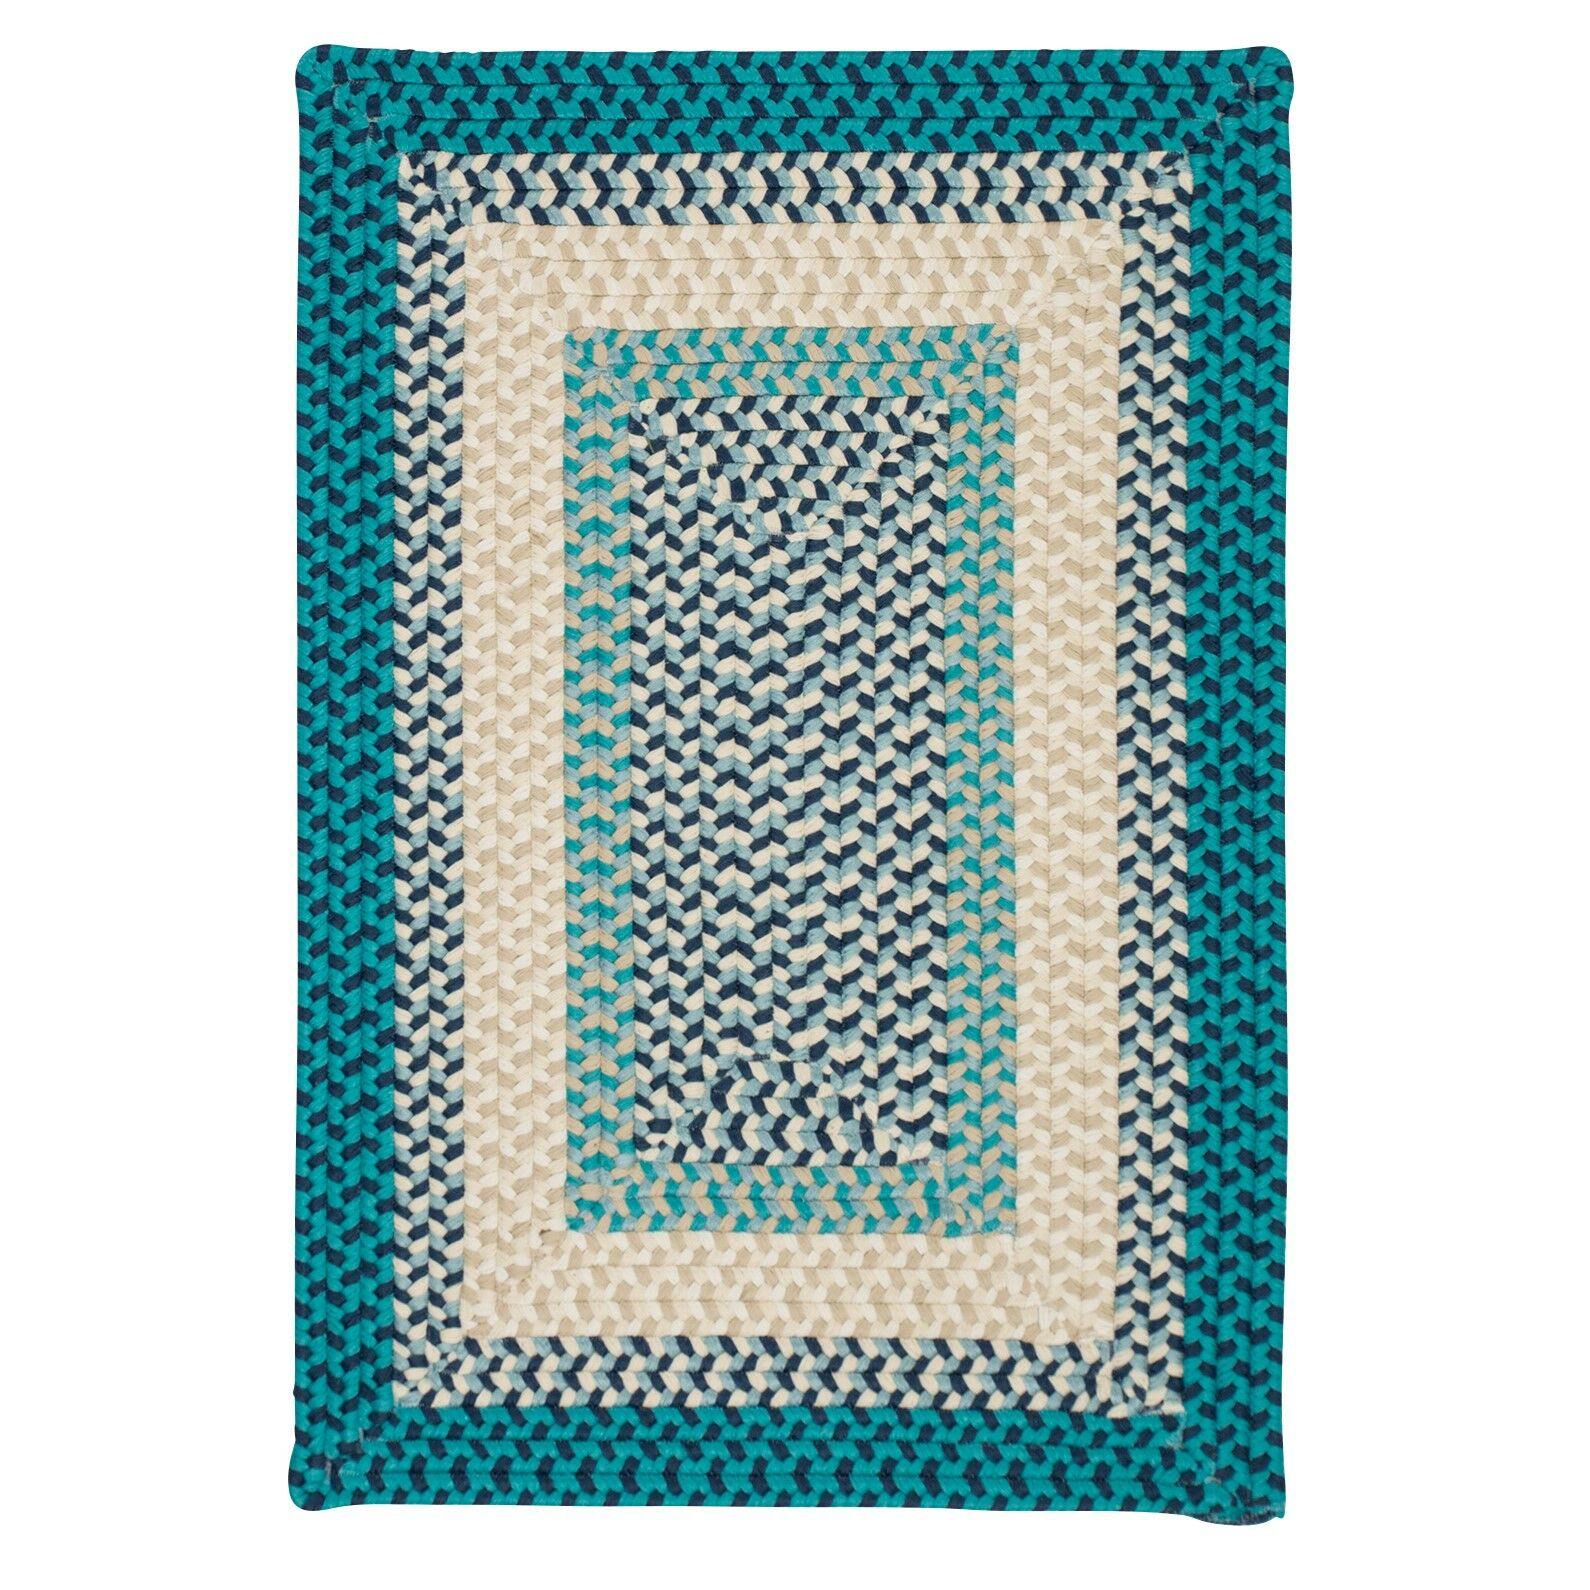 Marathovounos Hand-Woven Wool Blue Area Rug Rug Size: Square 6'